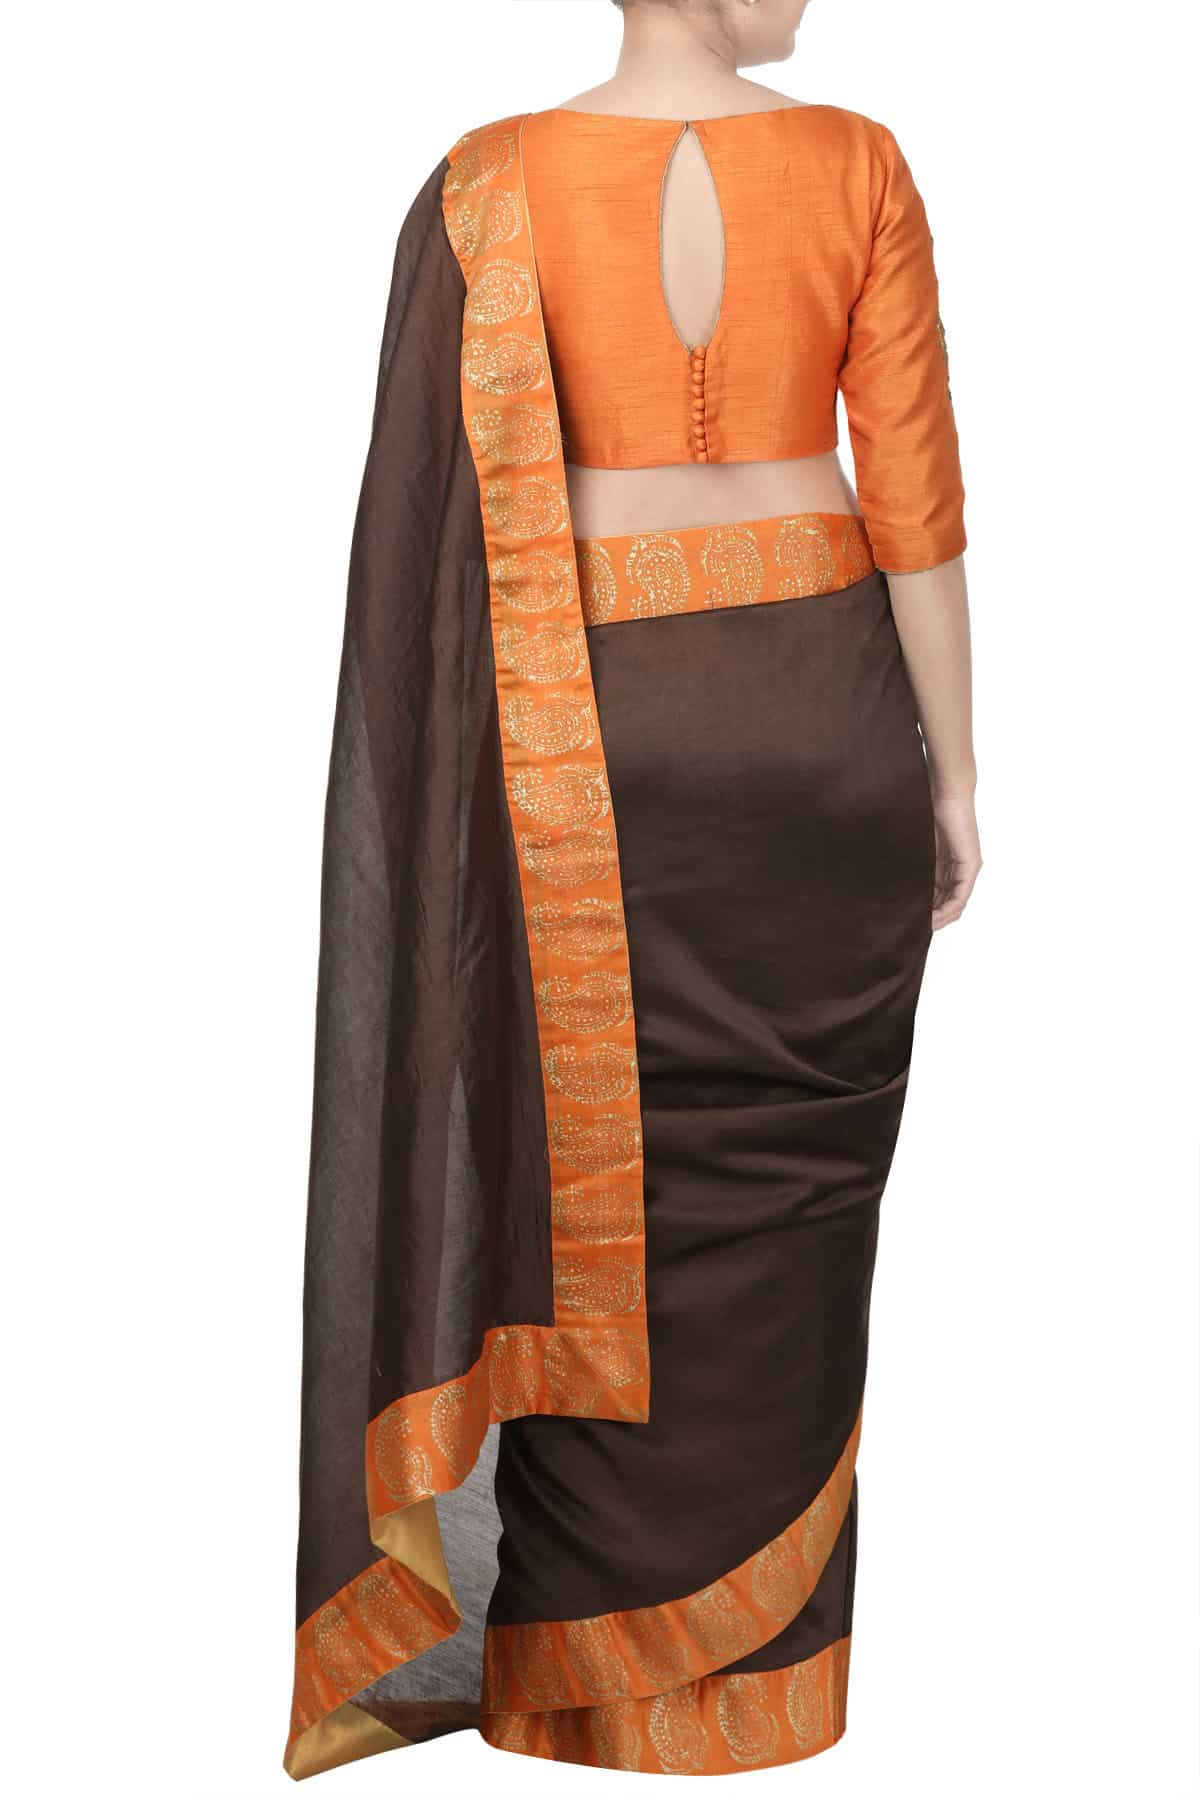 Drape Designer Sarees For Weddings Only From Thehl